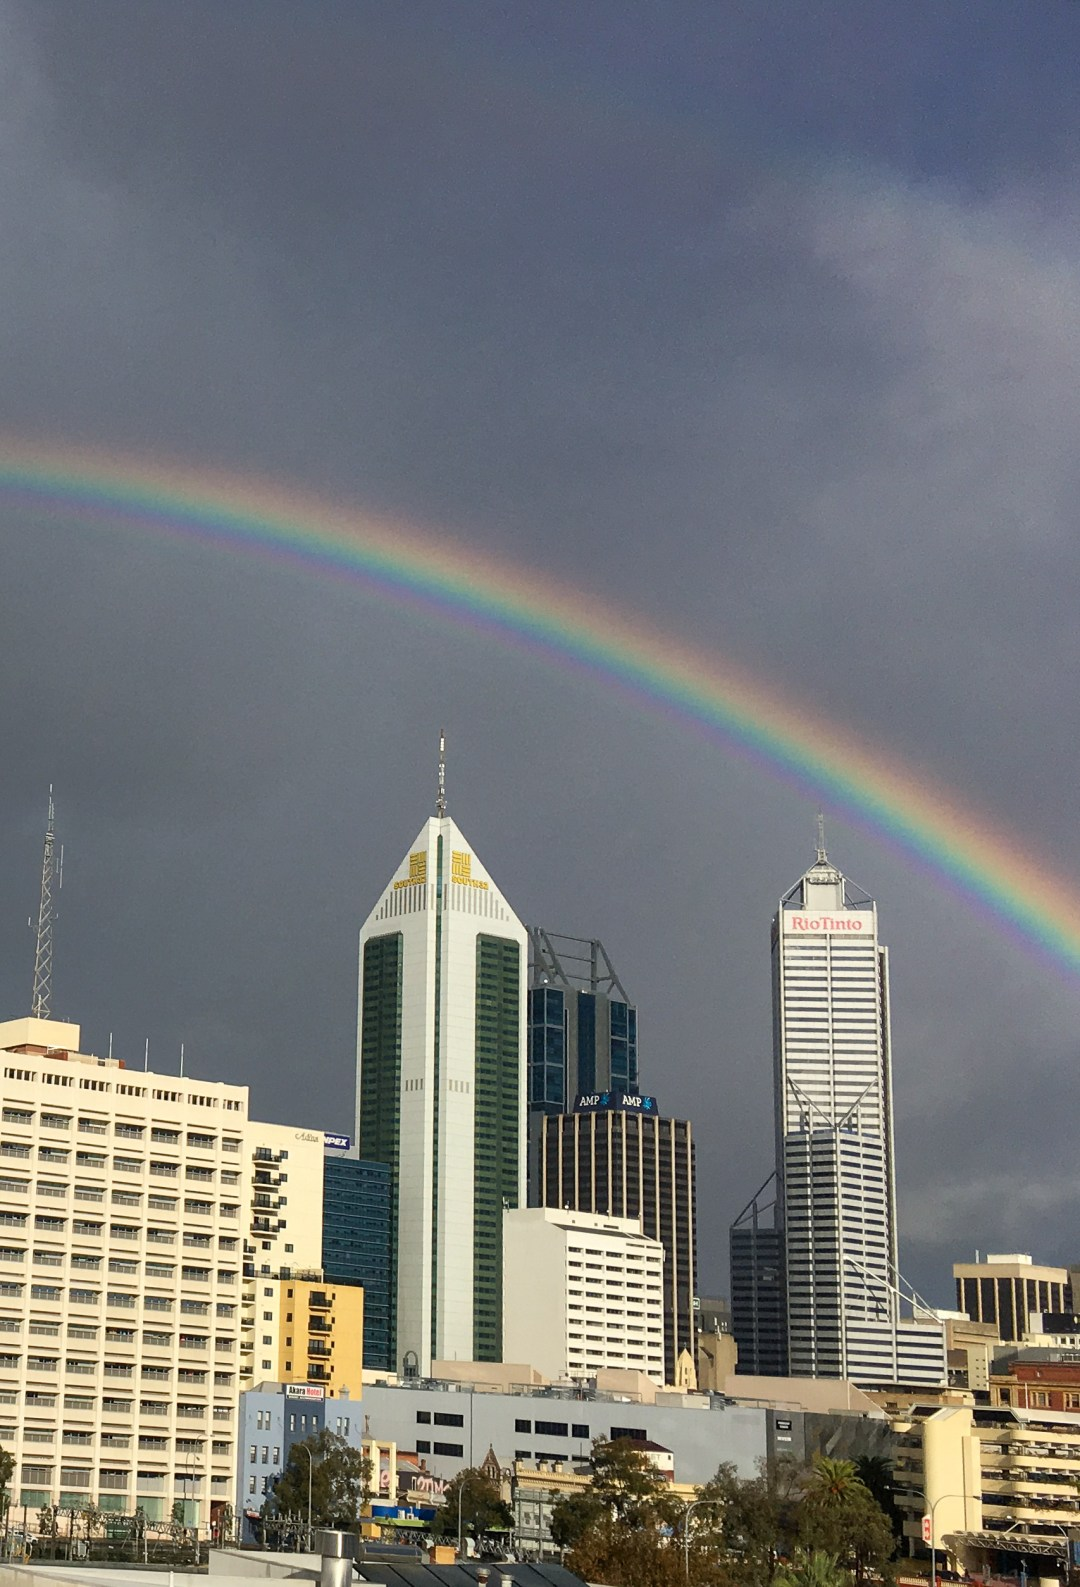 Rainbow over Perth CBD